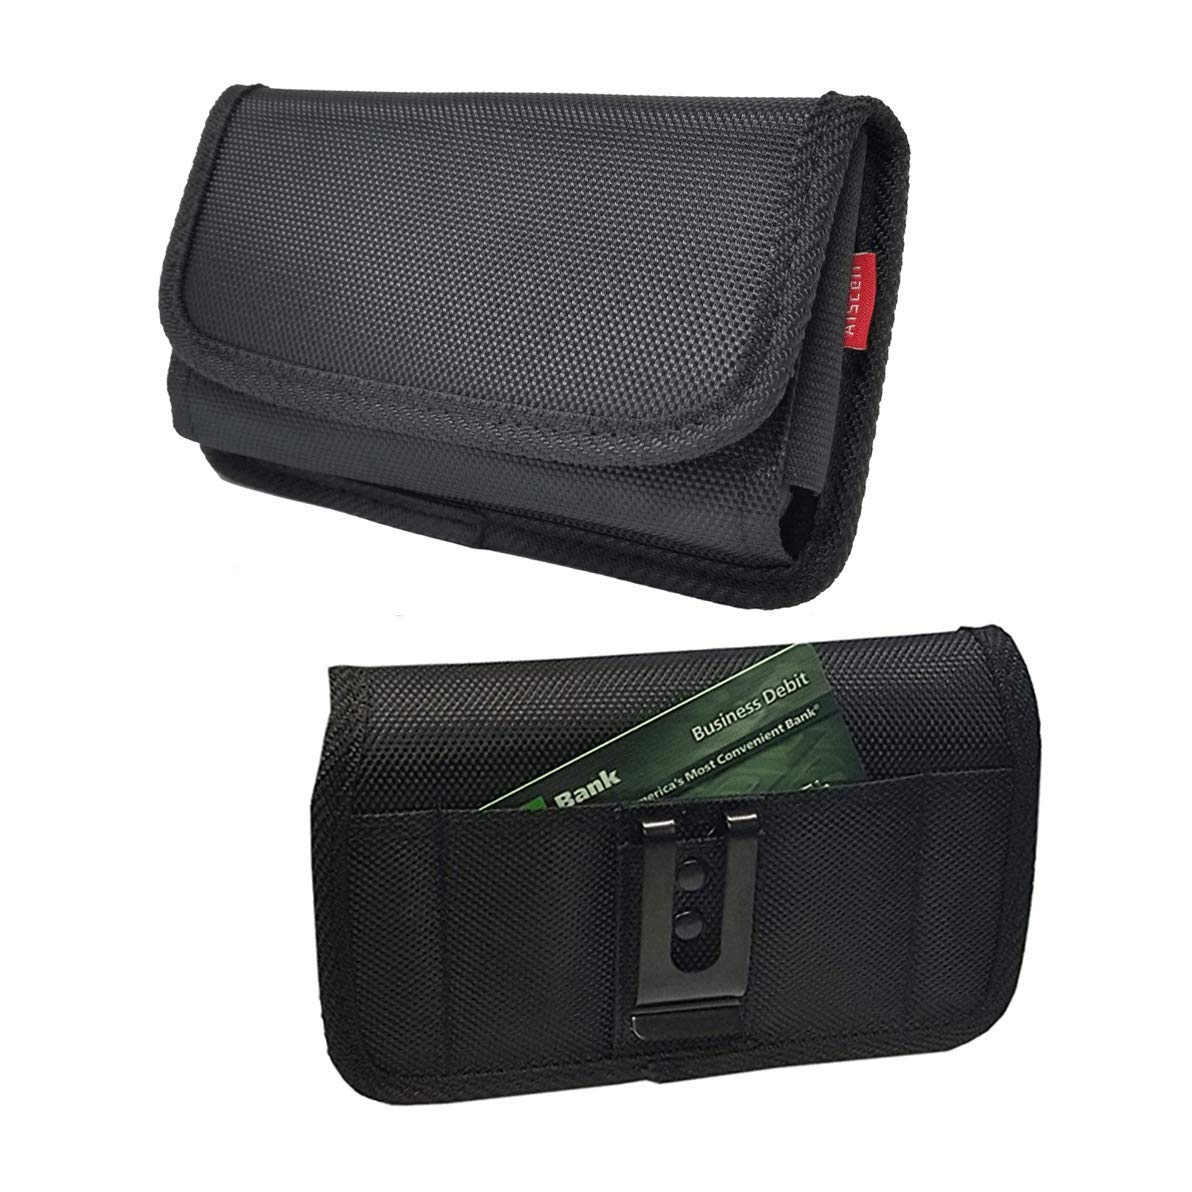 ff281825a AIScell Universal Cellphone Pouch [Sideways Heavy Duty Nylon Pocuh Wallet Case  Belt Clip Holster 6.15x3.00x0.80 In] Fits Iphone XS, XR,X, 8, 7, ...